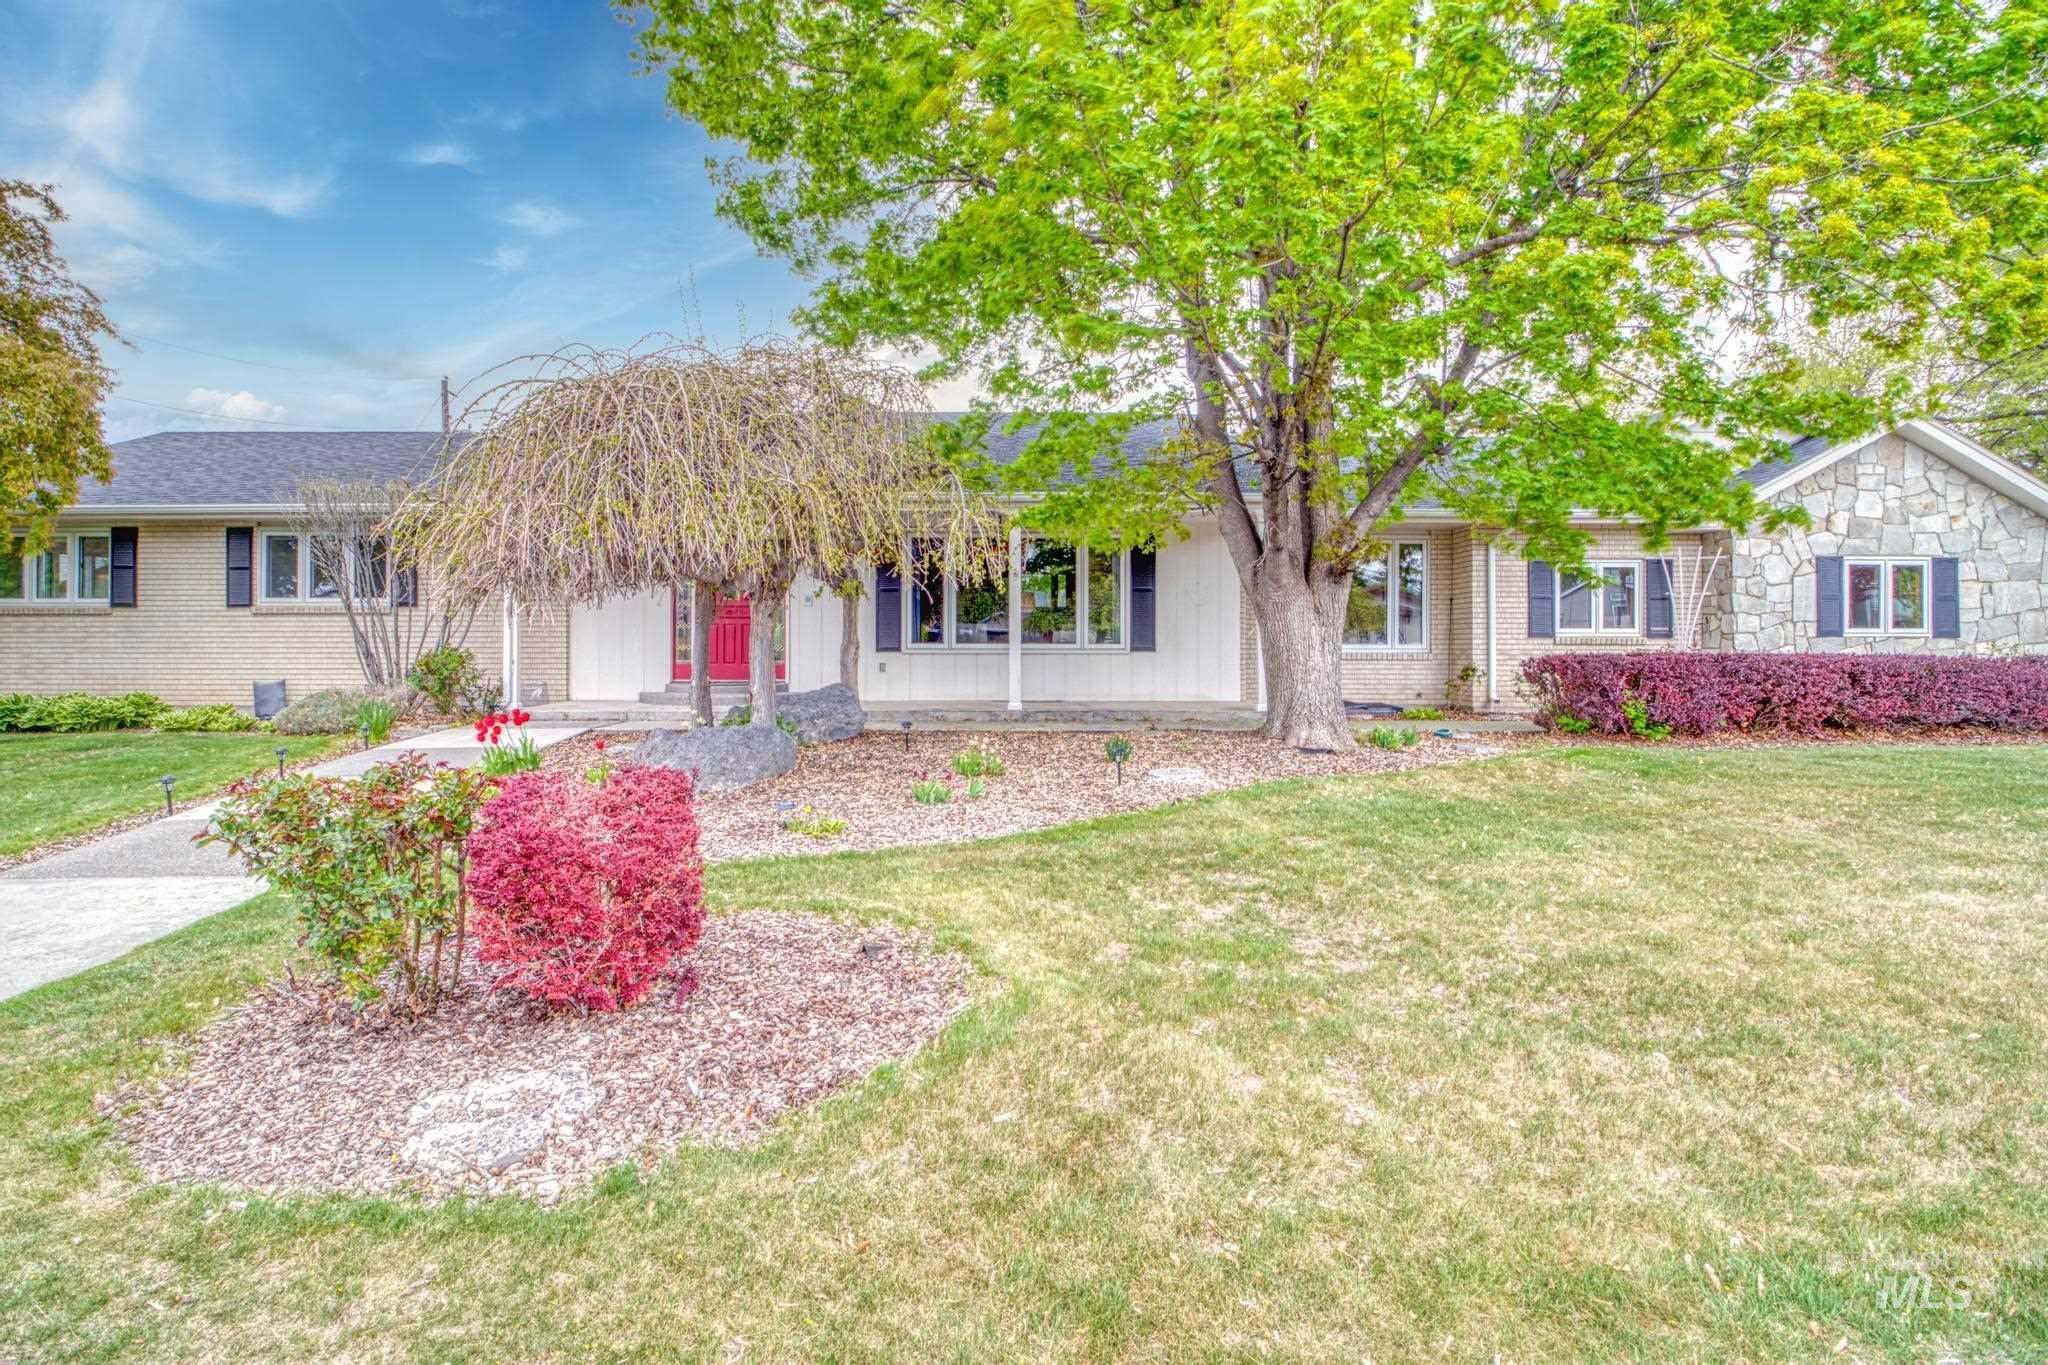 674 Mountain View Dr Property Photo - Twin Falls, ID real estate listing